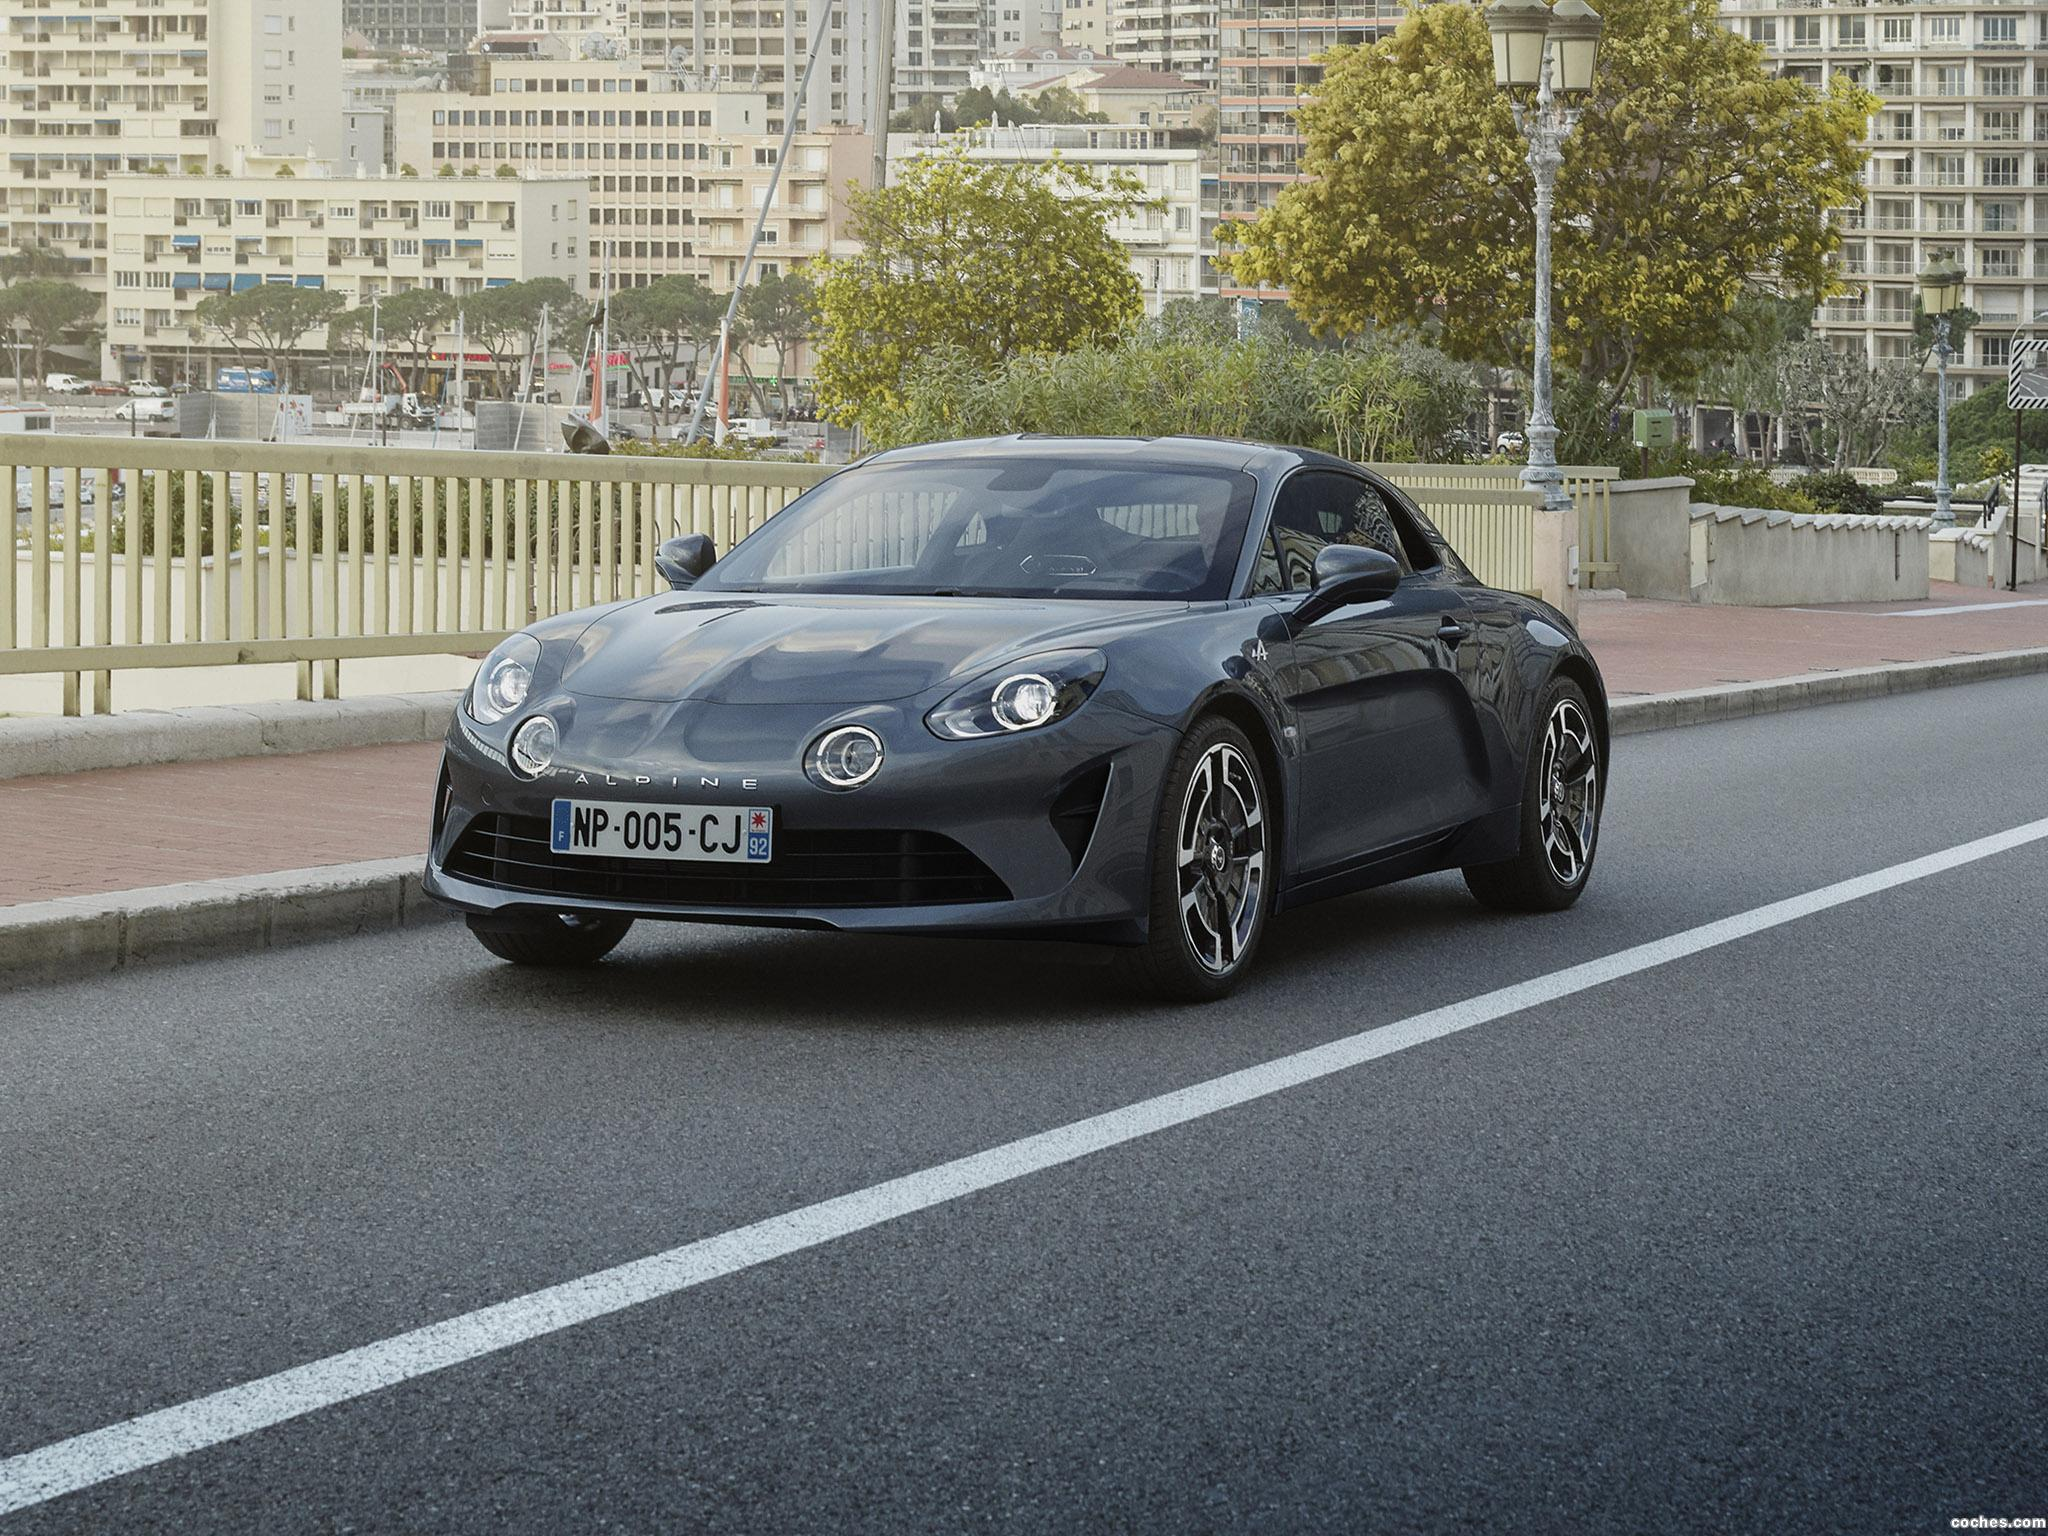 alpine_a110-legende-2018_r9.jpg